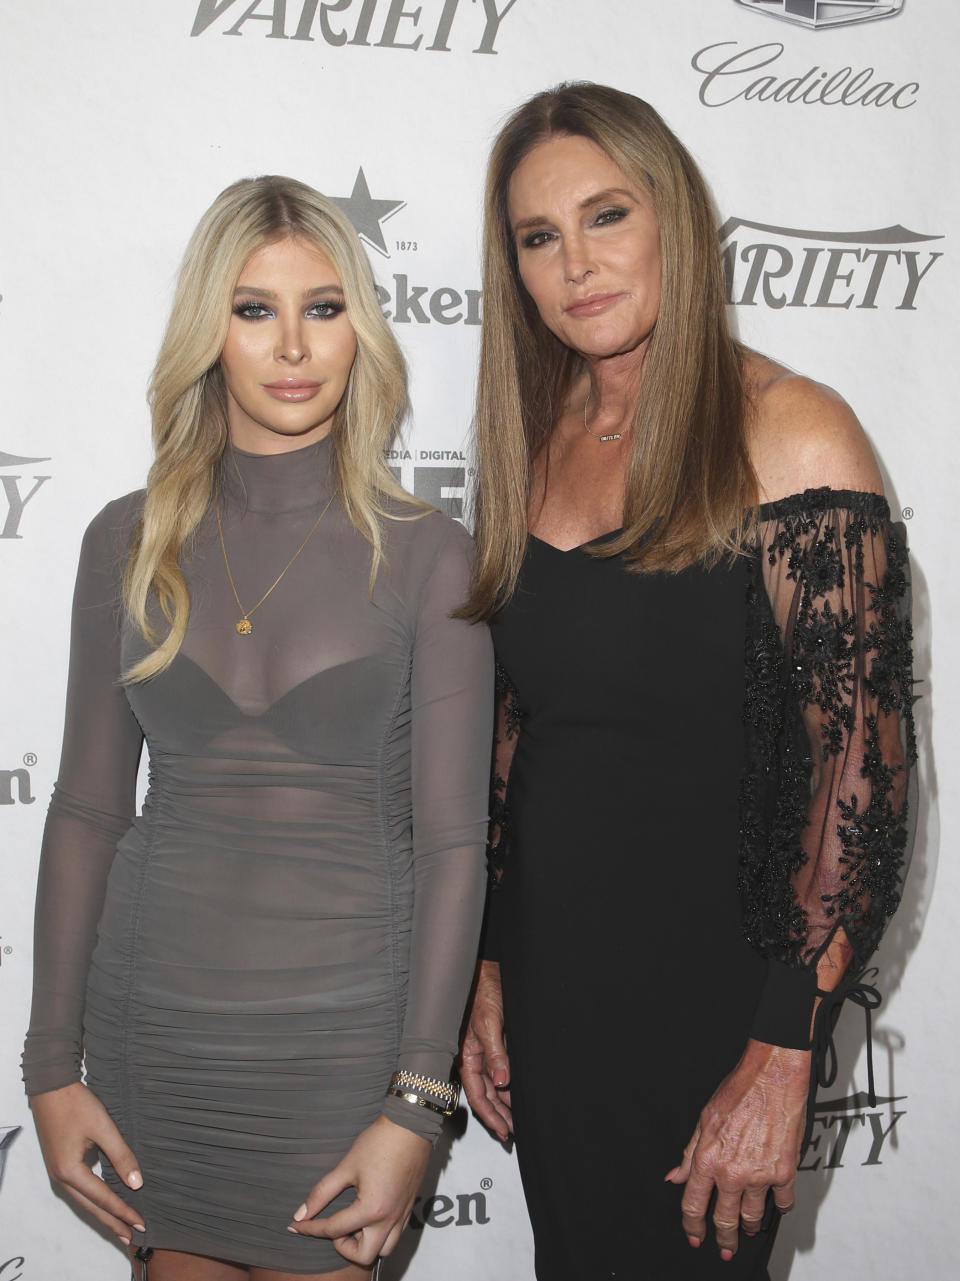 WEST HOLLYWOOD, CA - SEPTEMBER 15: Sophia Hutchins, Caitlyn Jenner, at the Variety and Women in Film 2018 Television Nominees Celebration, sponsored by Cadillac and Heineken, at Cecconiís on September 15, 2018 in West Hollywood, California. Credit: Faye Sadou/MediaPunch /IPX